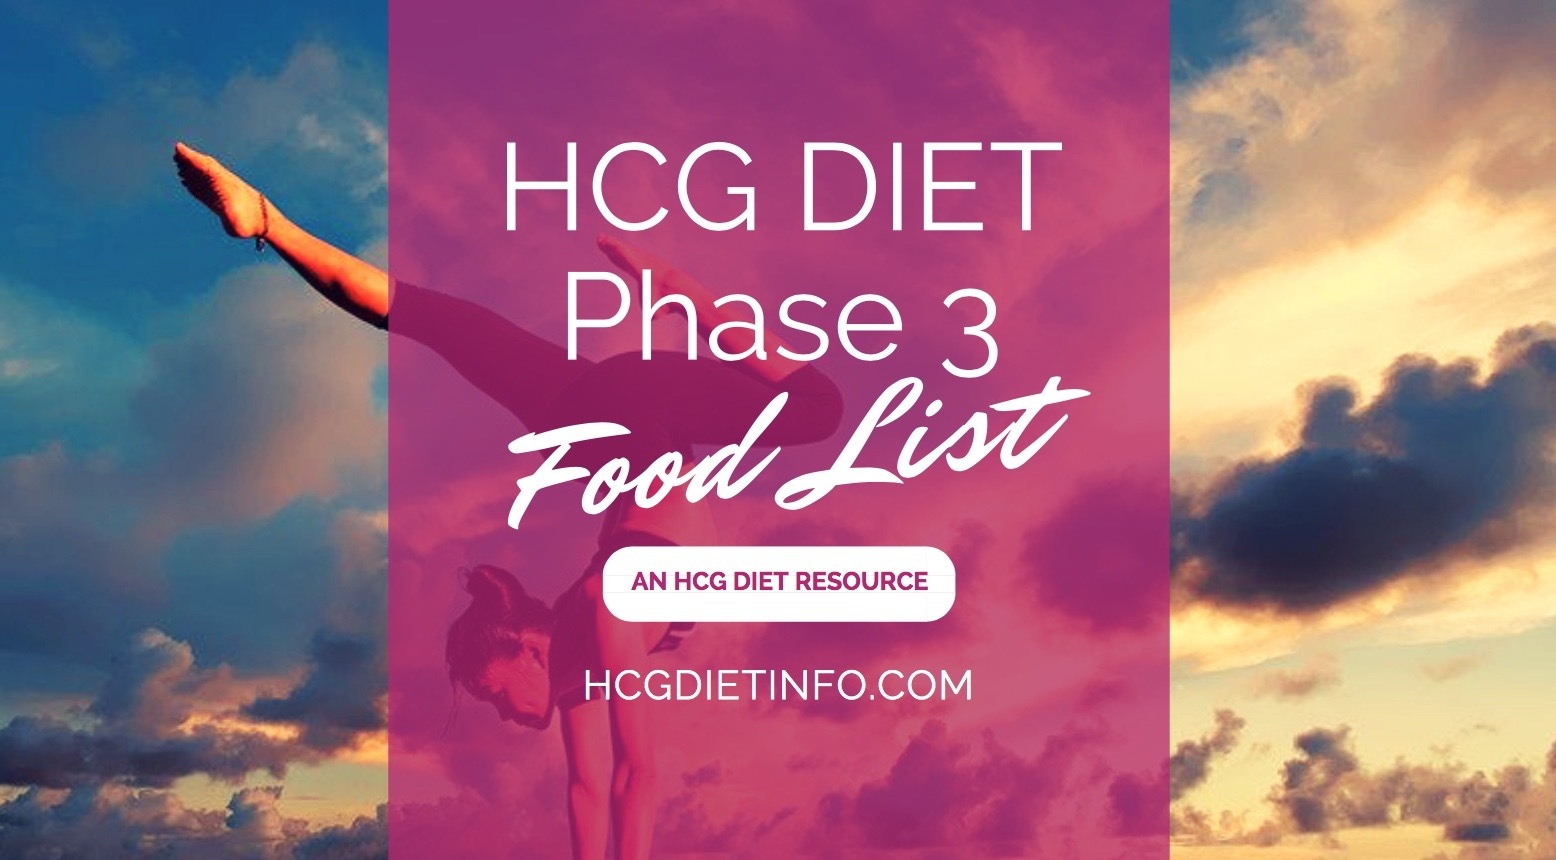 HCG Diet Phase 3 Foods List – Approved foods for P3 |HCG Diet Info